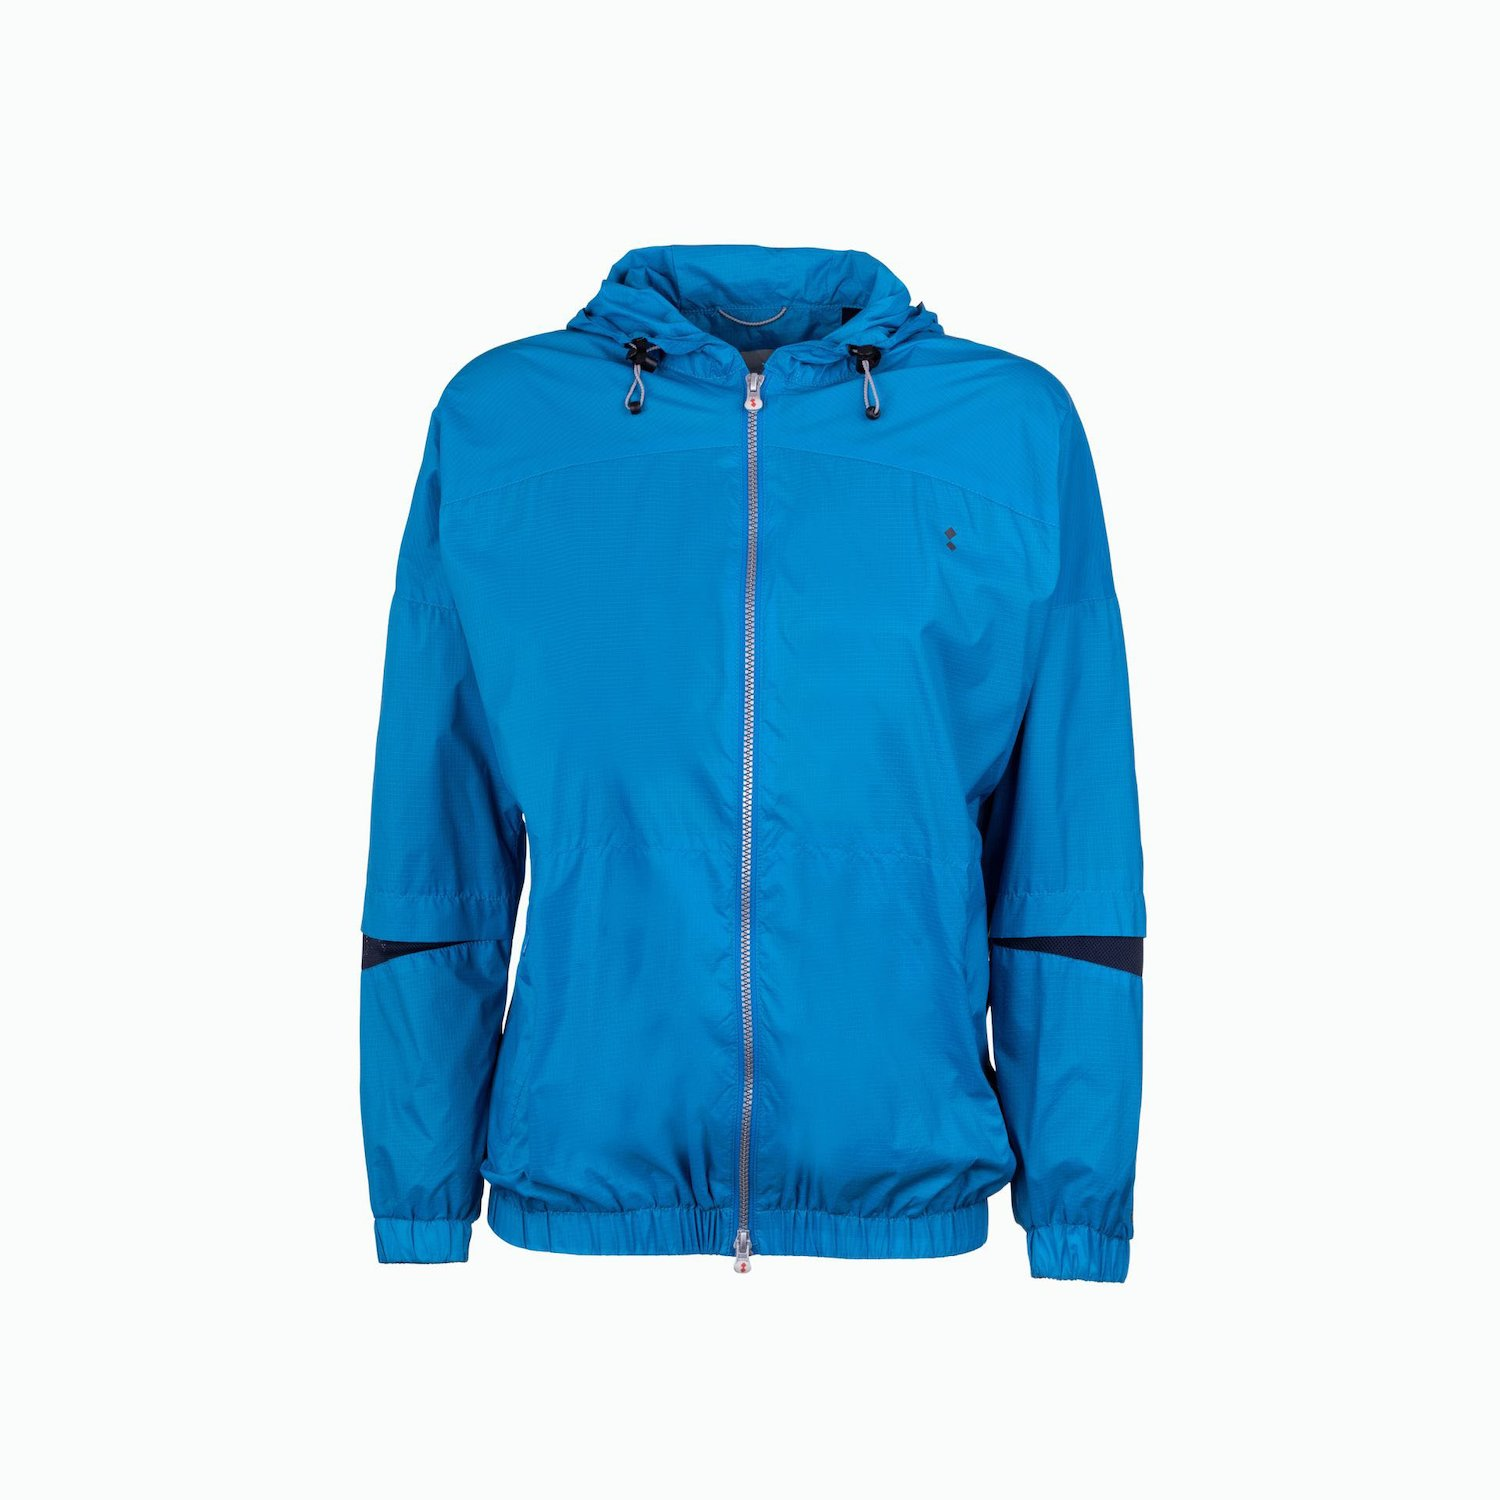 Rope Jacket - Brilliantes Blau